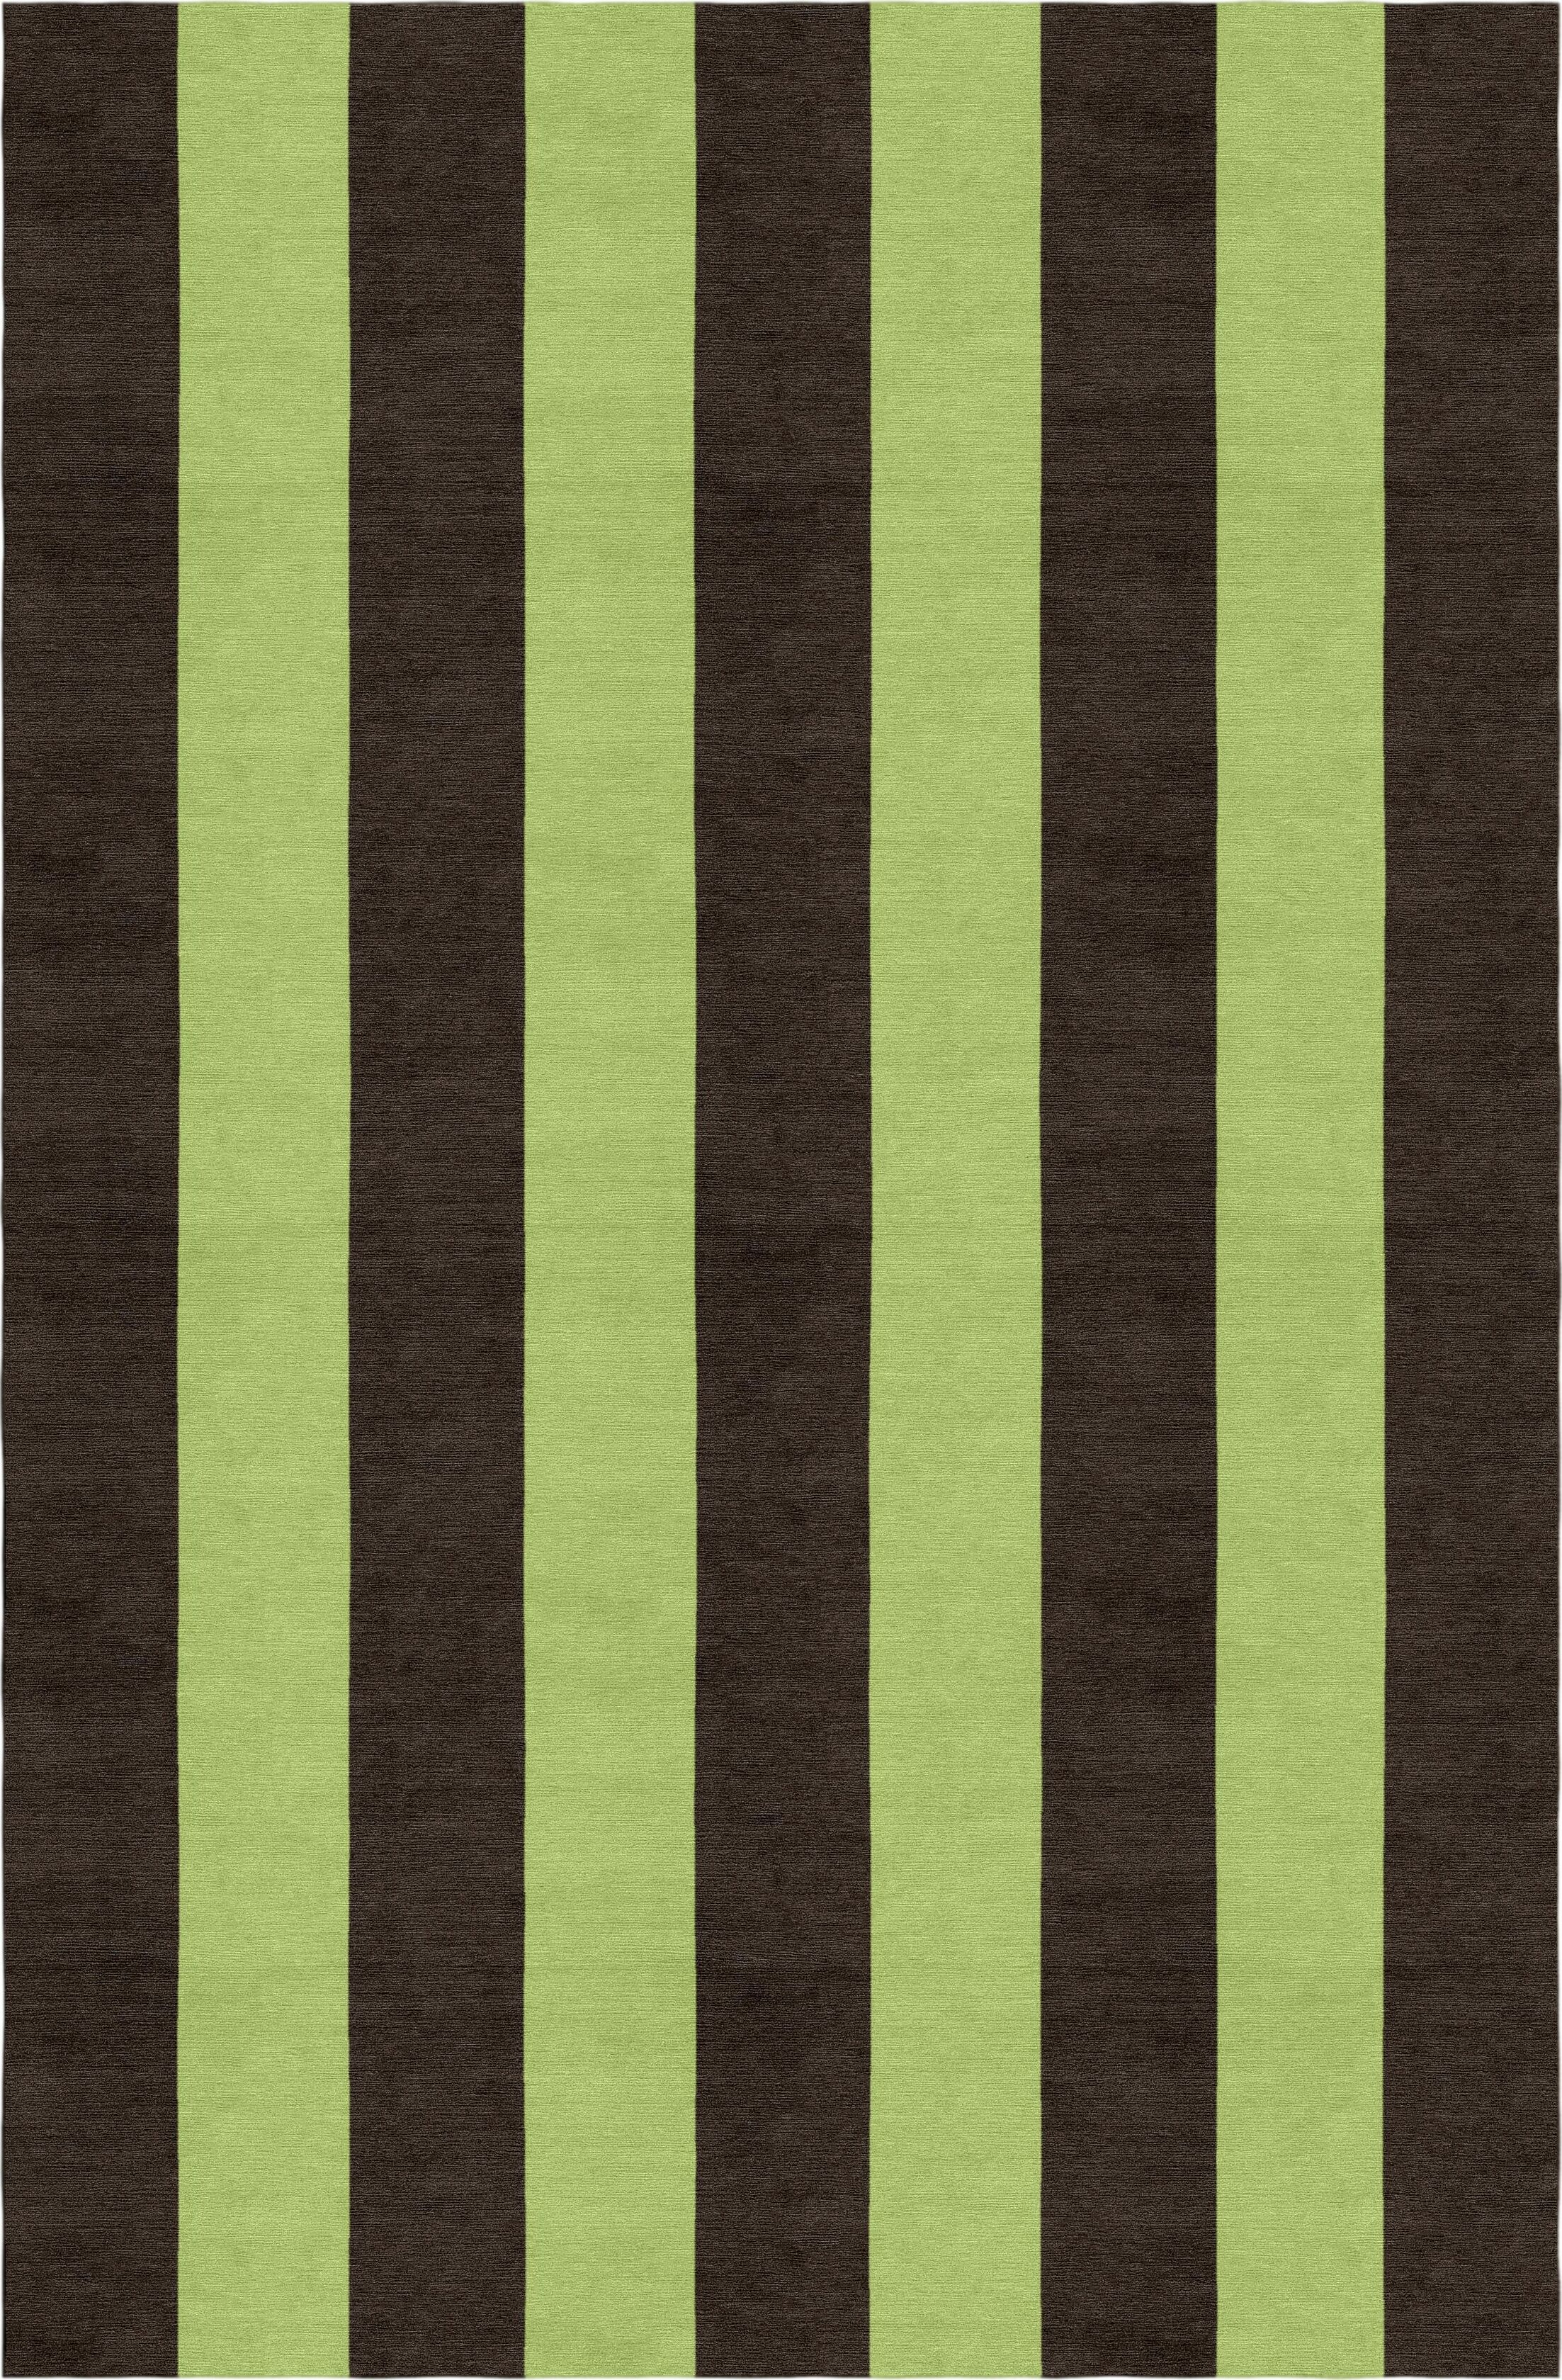 Lefker Stripe Hand-Woven Wool Brown/Green Area Rug Rug Size: Rectangle 5' x 8'